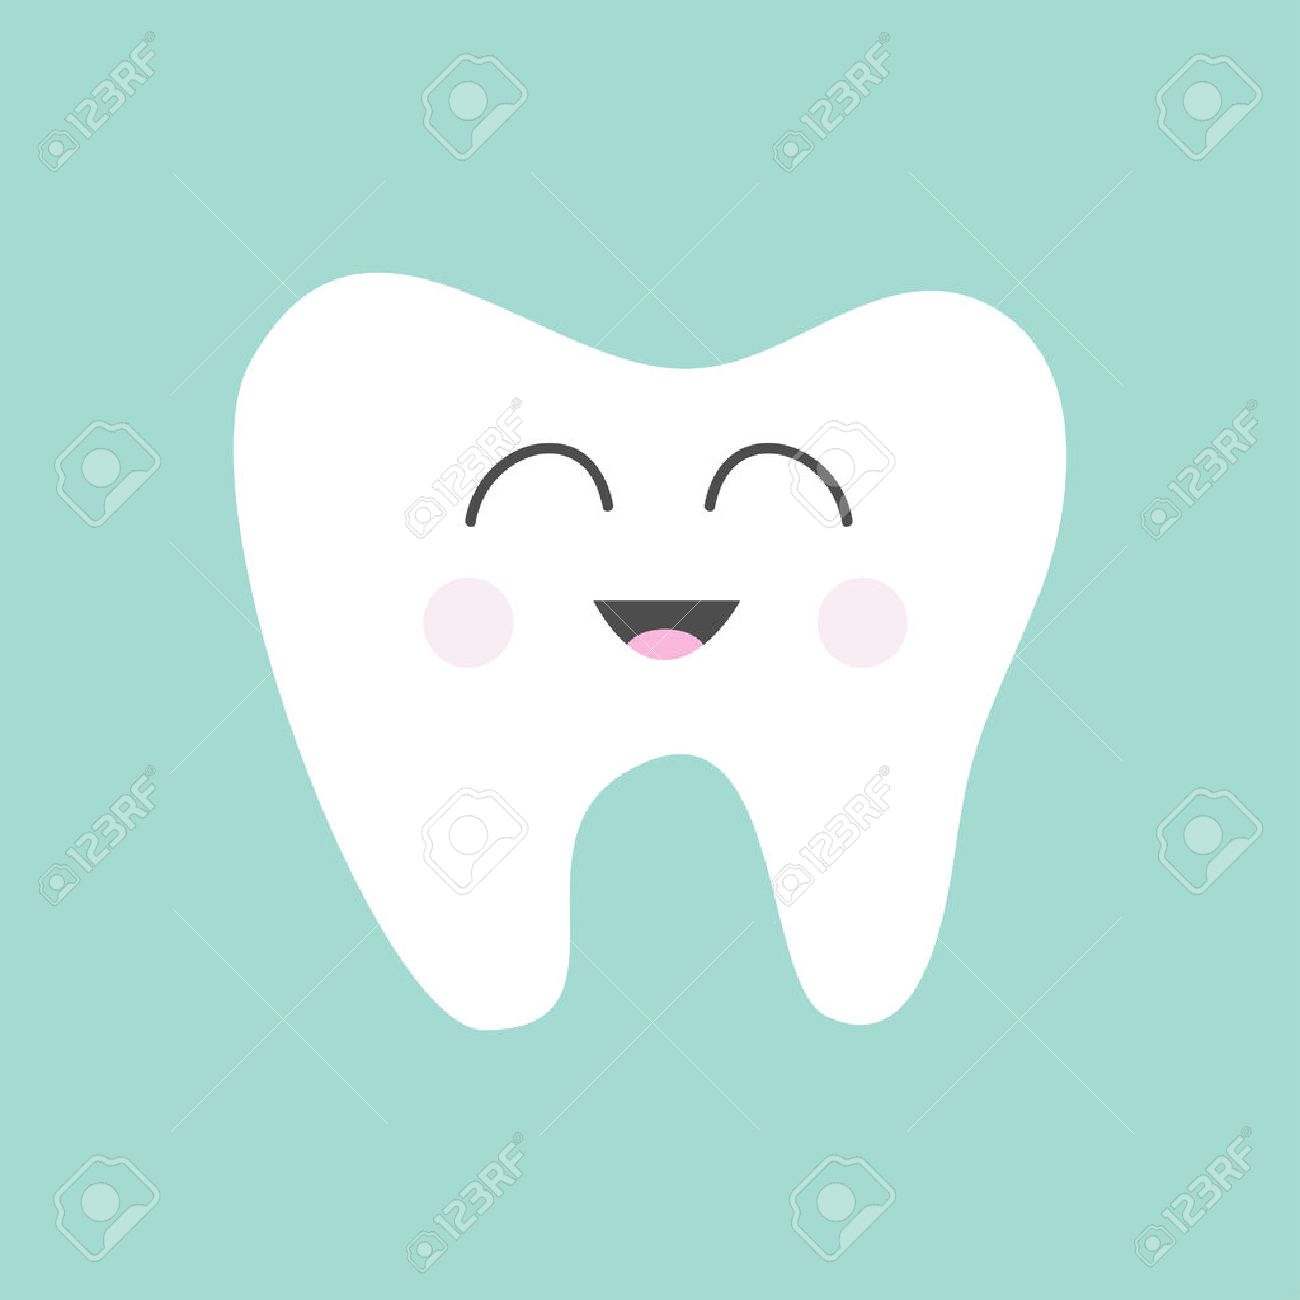 Tooth icon. Cute funny cartoon smiling character. Oral dental hygiene. Children teeth care. Tooth health. Baby background. Flat design. Vector illustration - 51865055